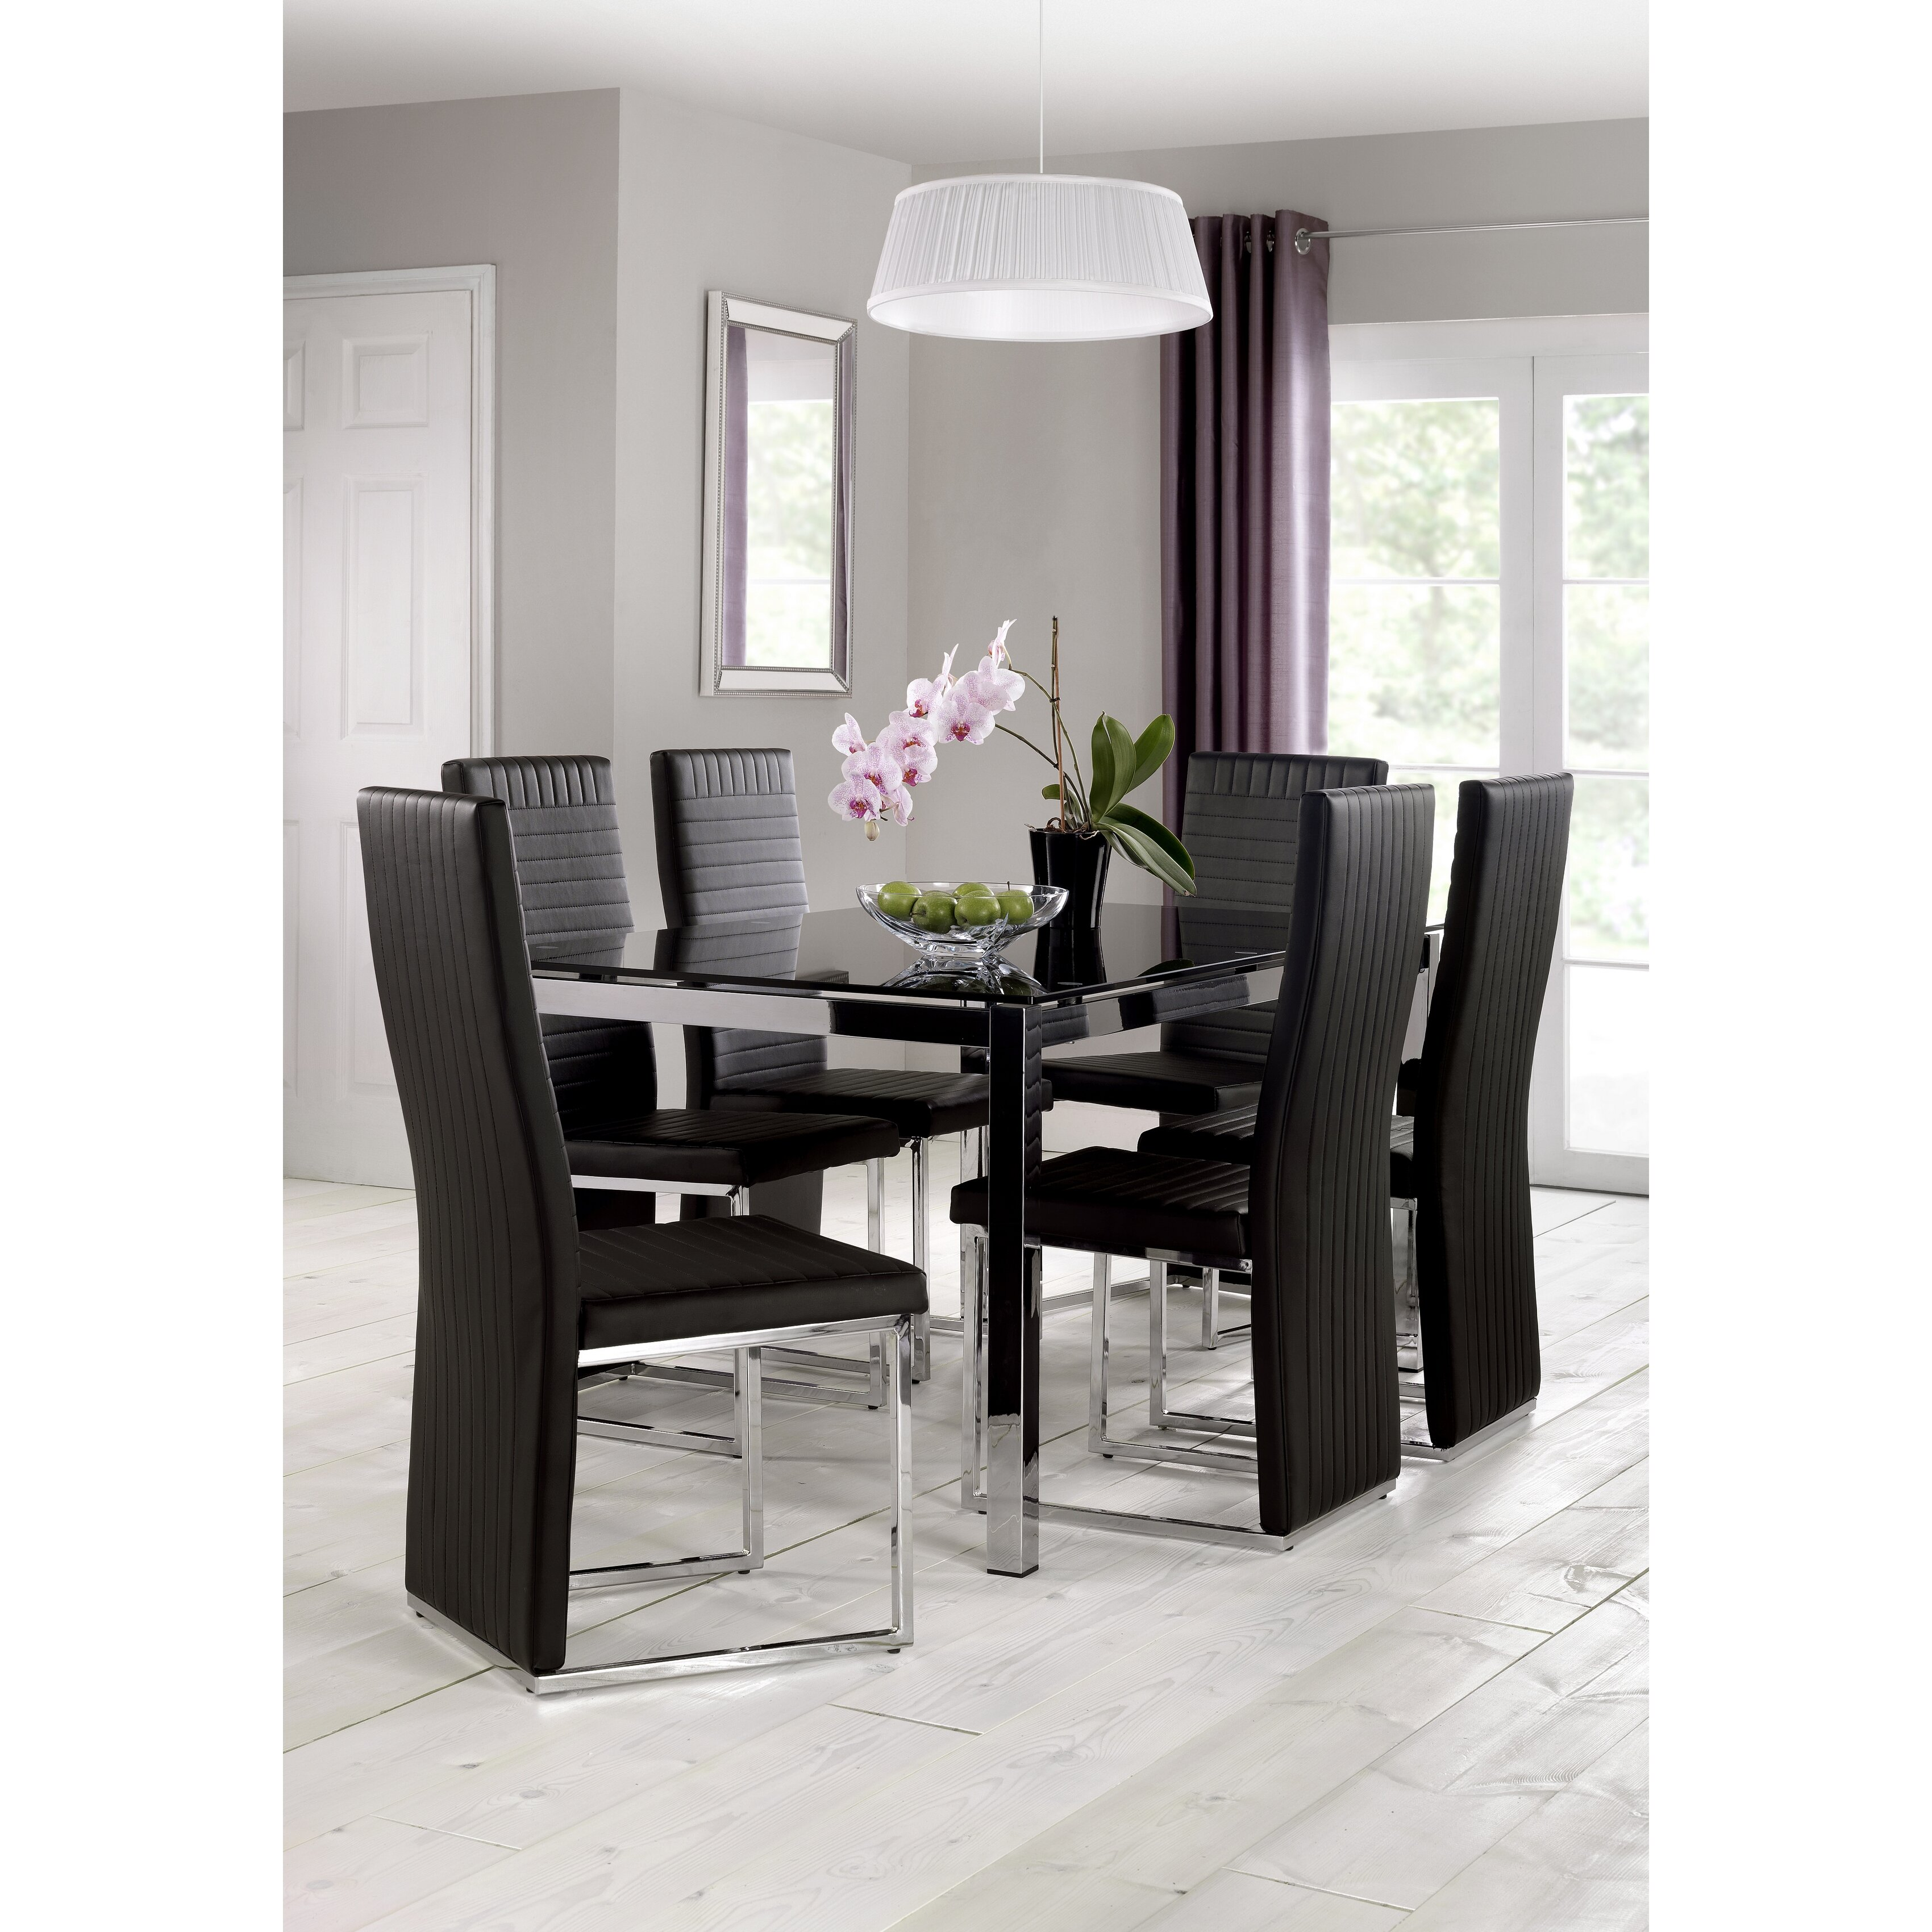 All home neville dining table and 4 chairs wayfair uk for Wayfair furniture dining tables